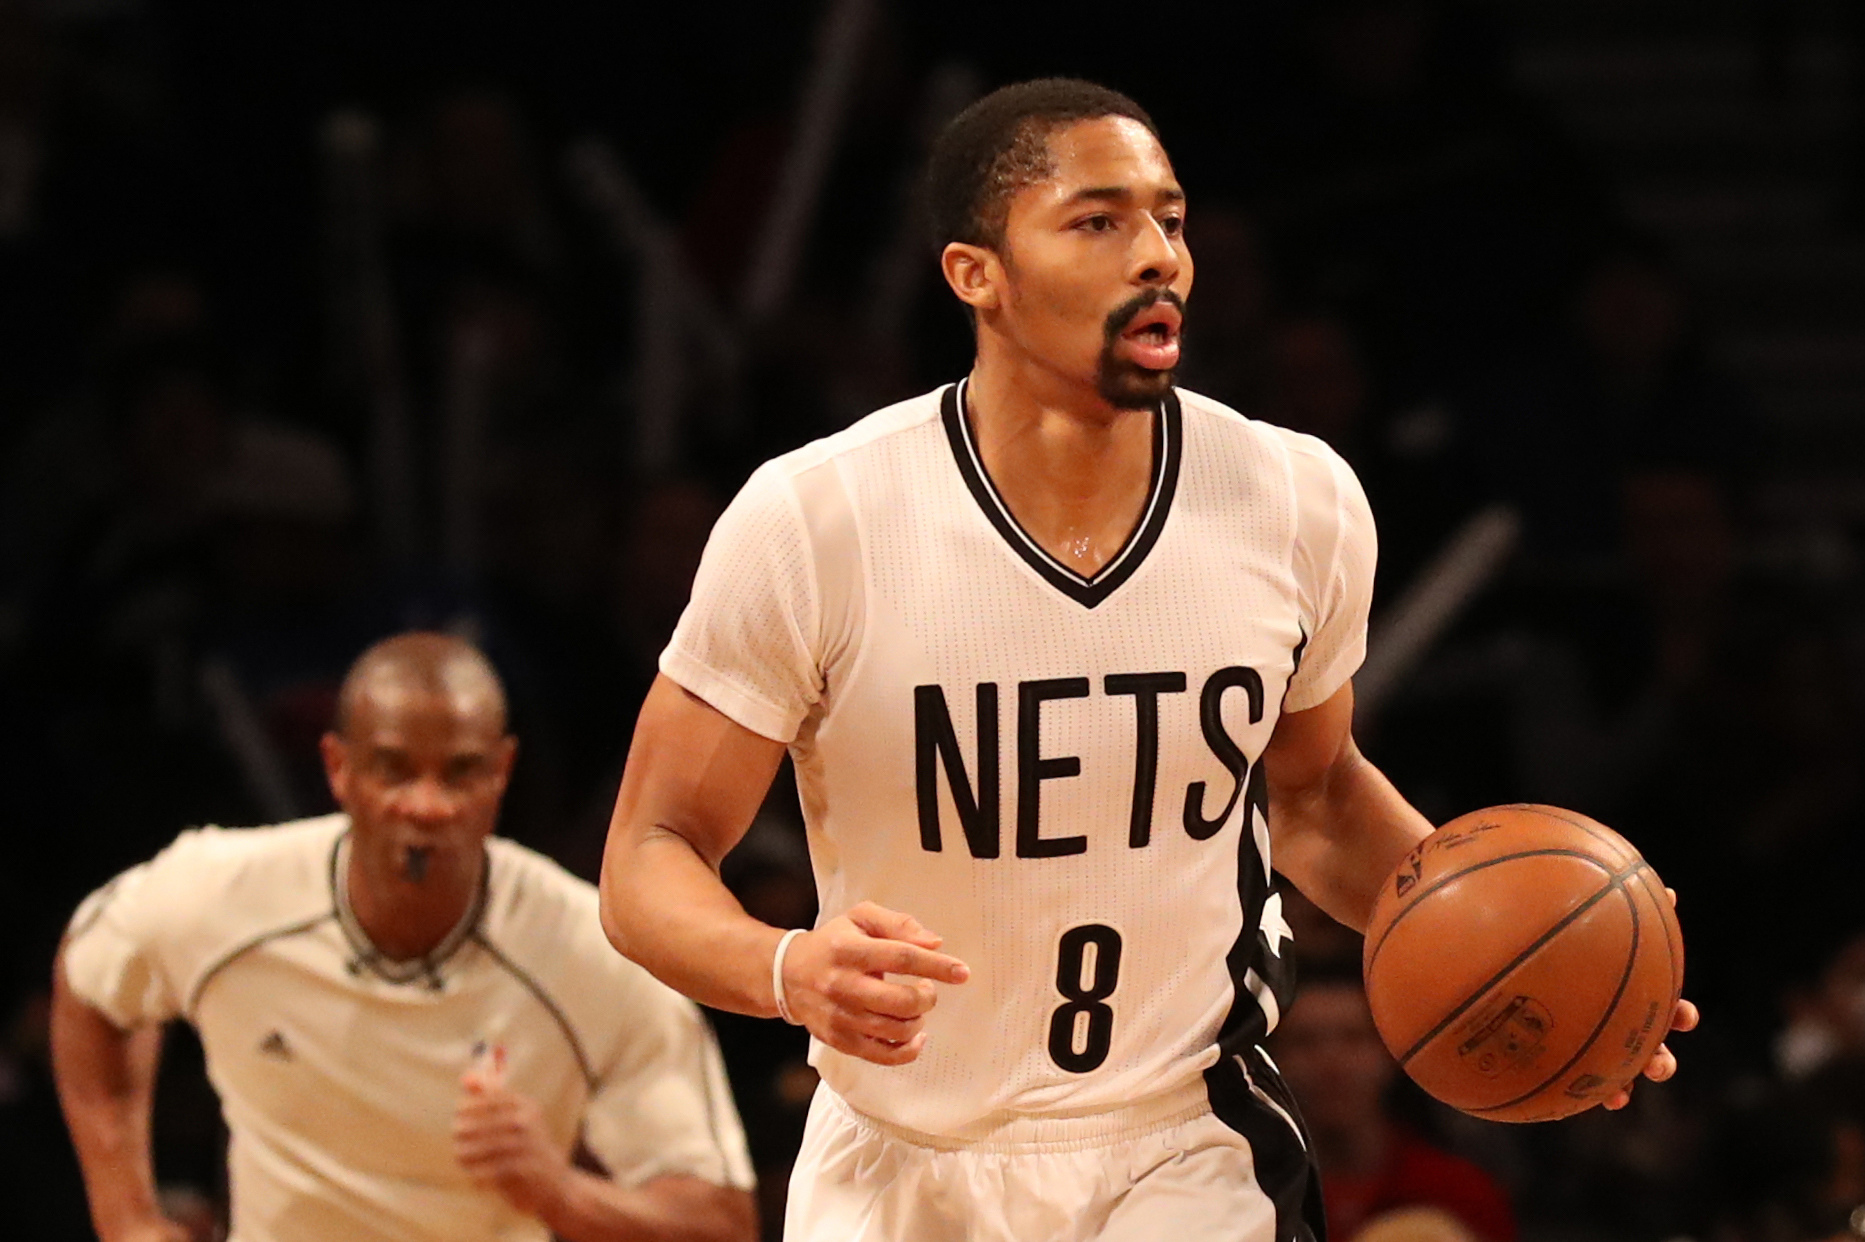 GT Oklahoma City vs The NETS Tuesday 03 14 17 7 30pm EST The